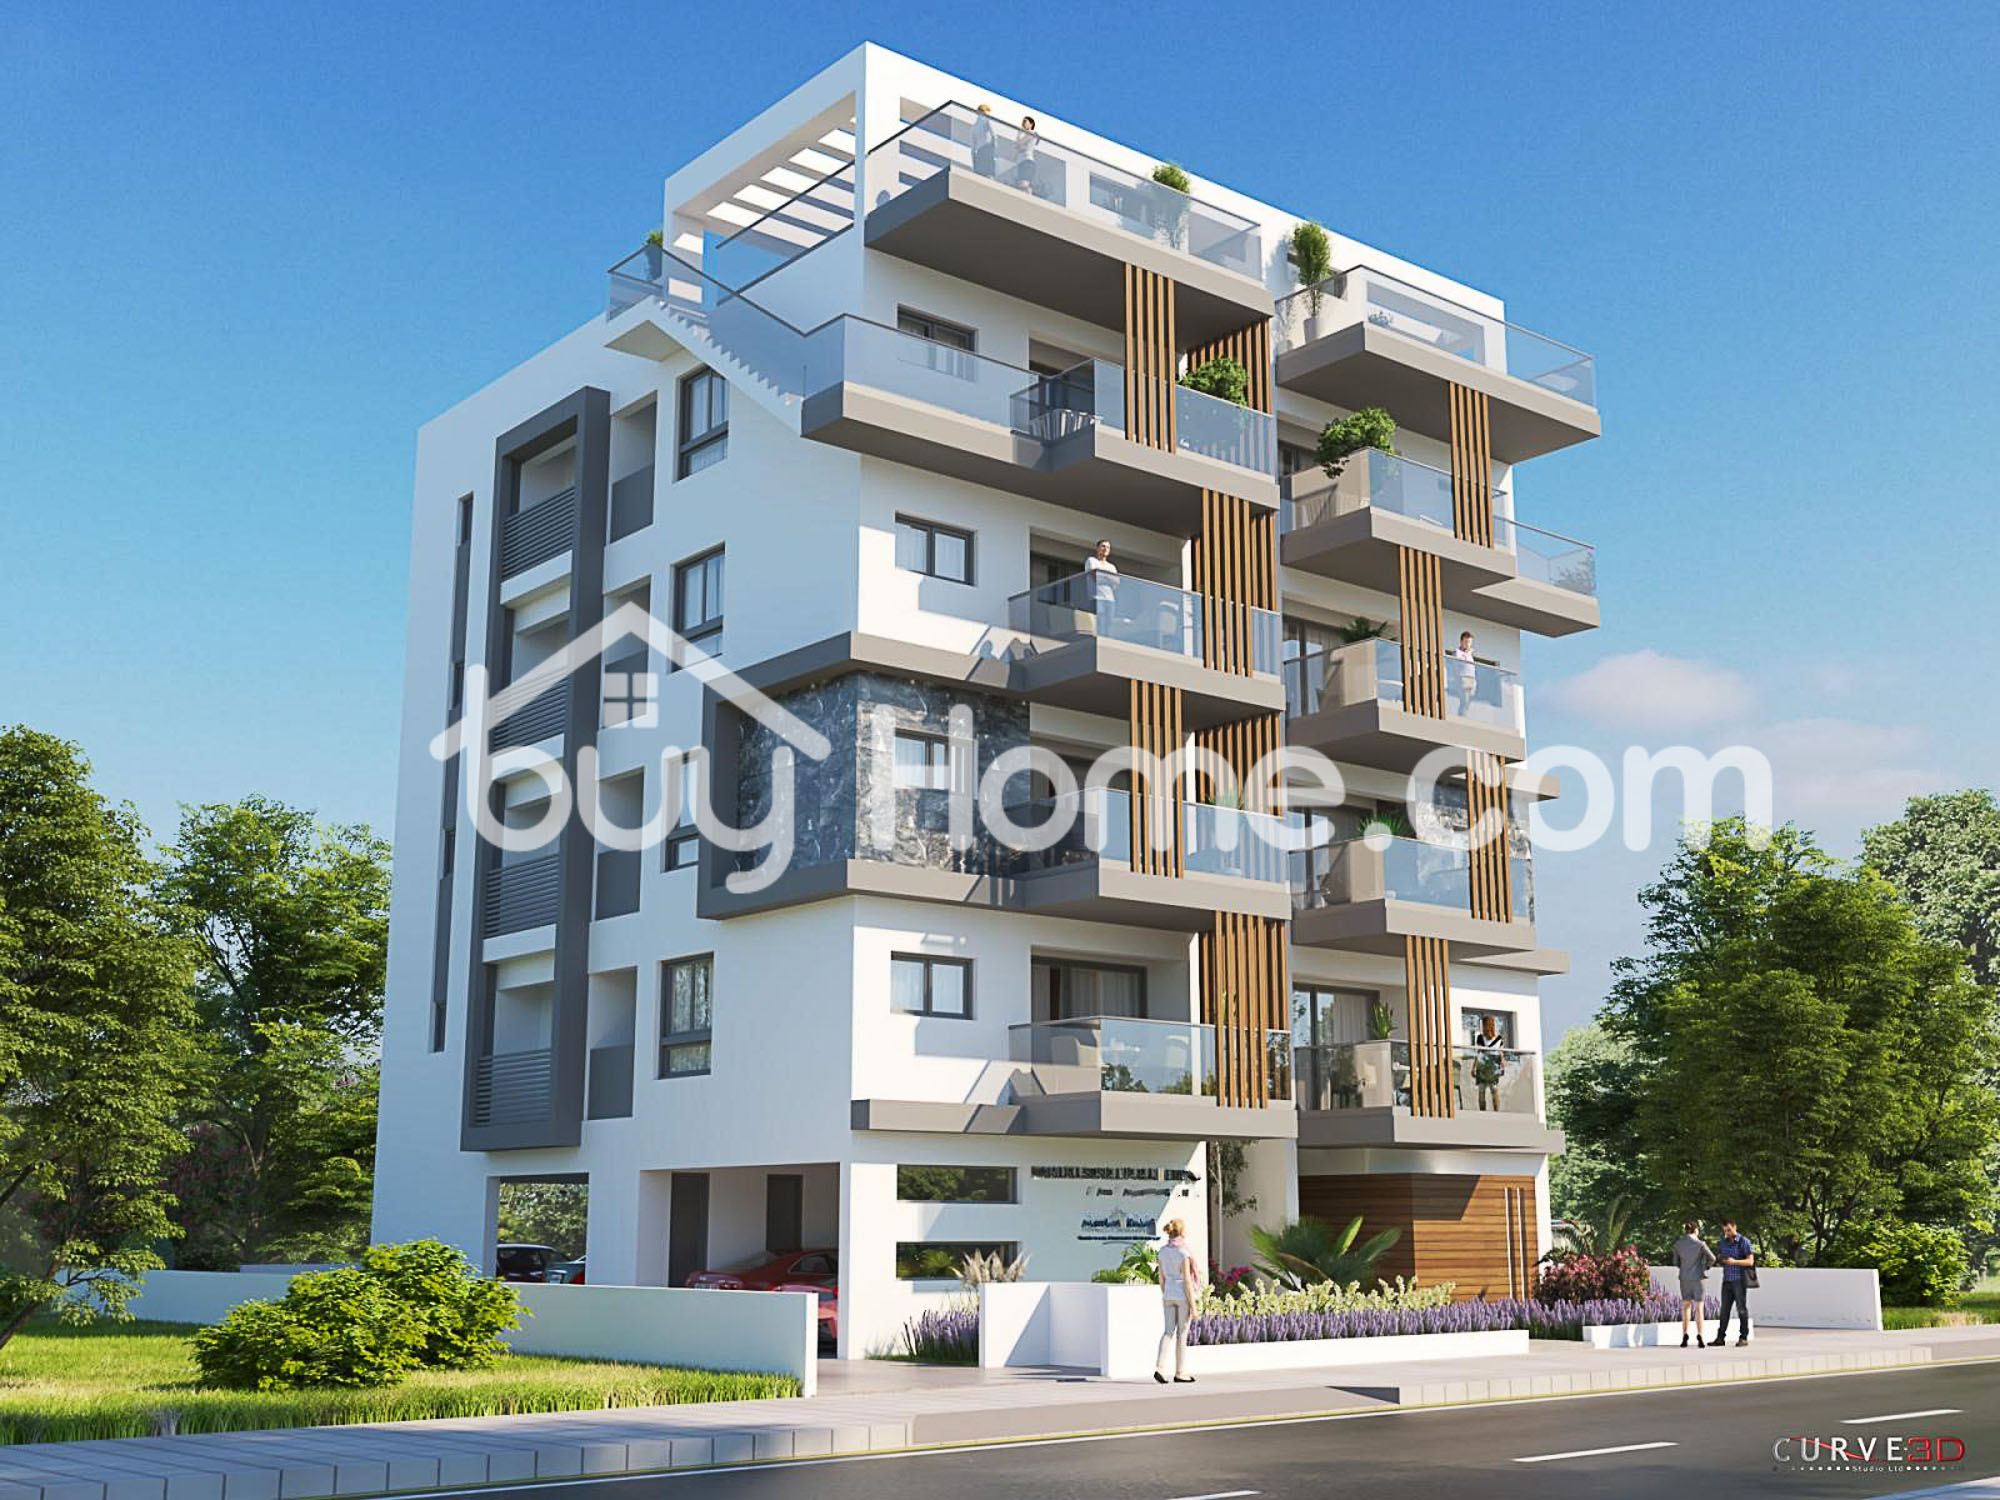 2 Bedroom  Top Floor Apartment + Roof Garden | BuyHome